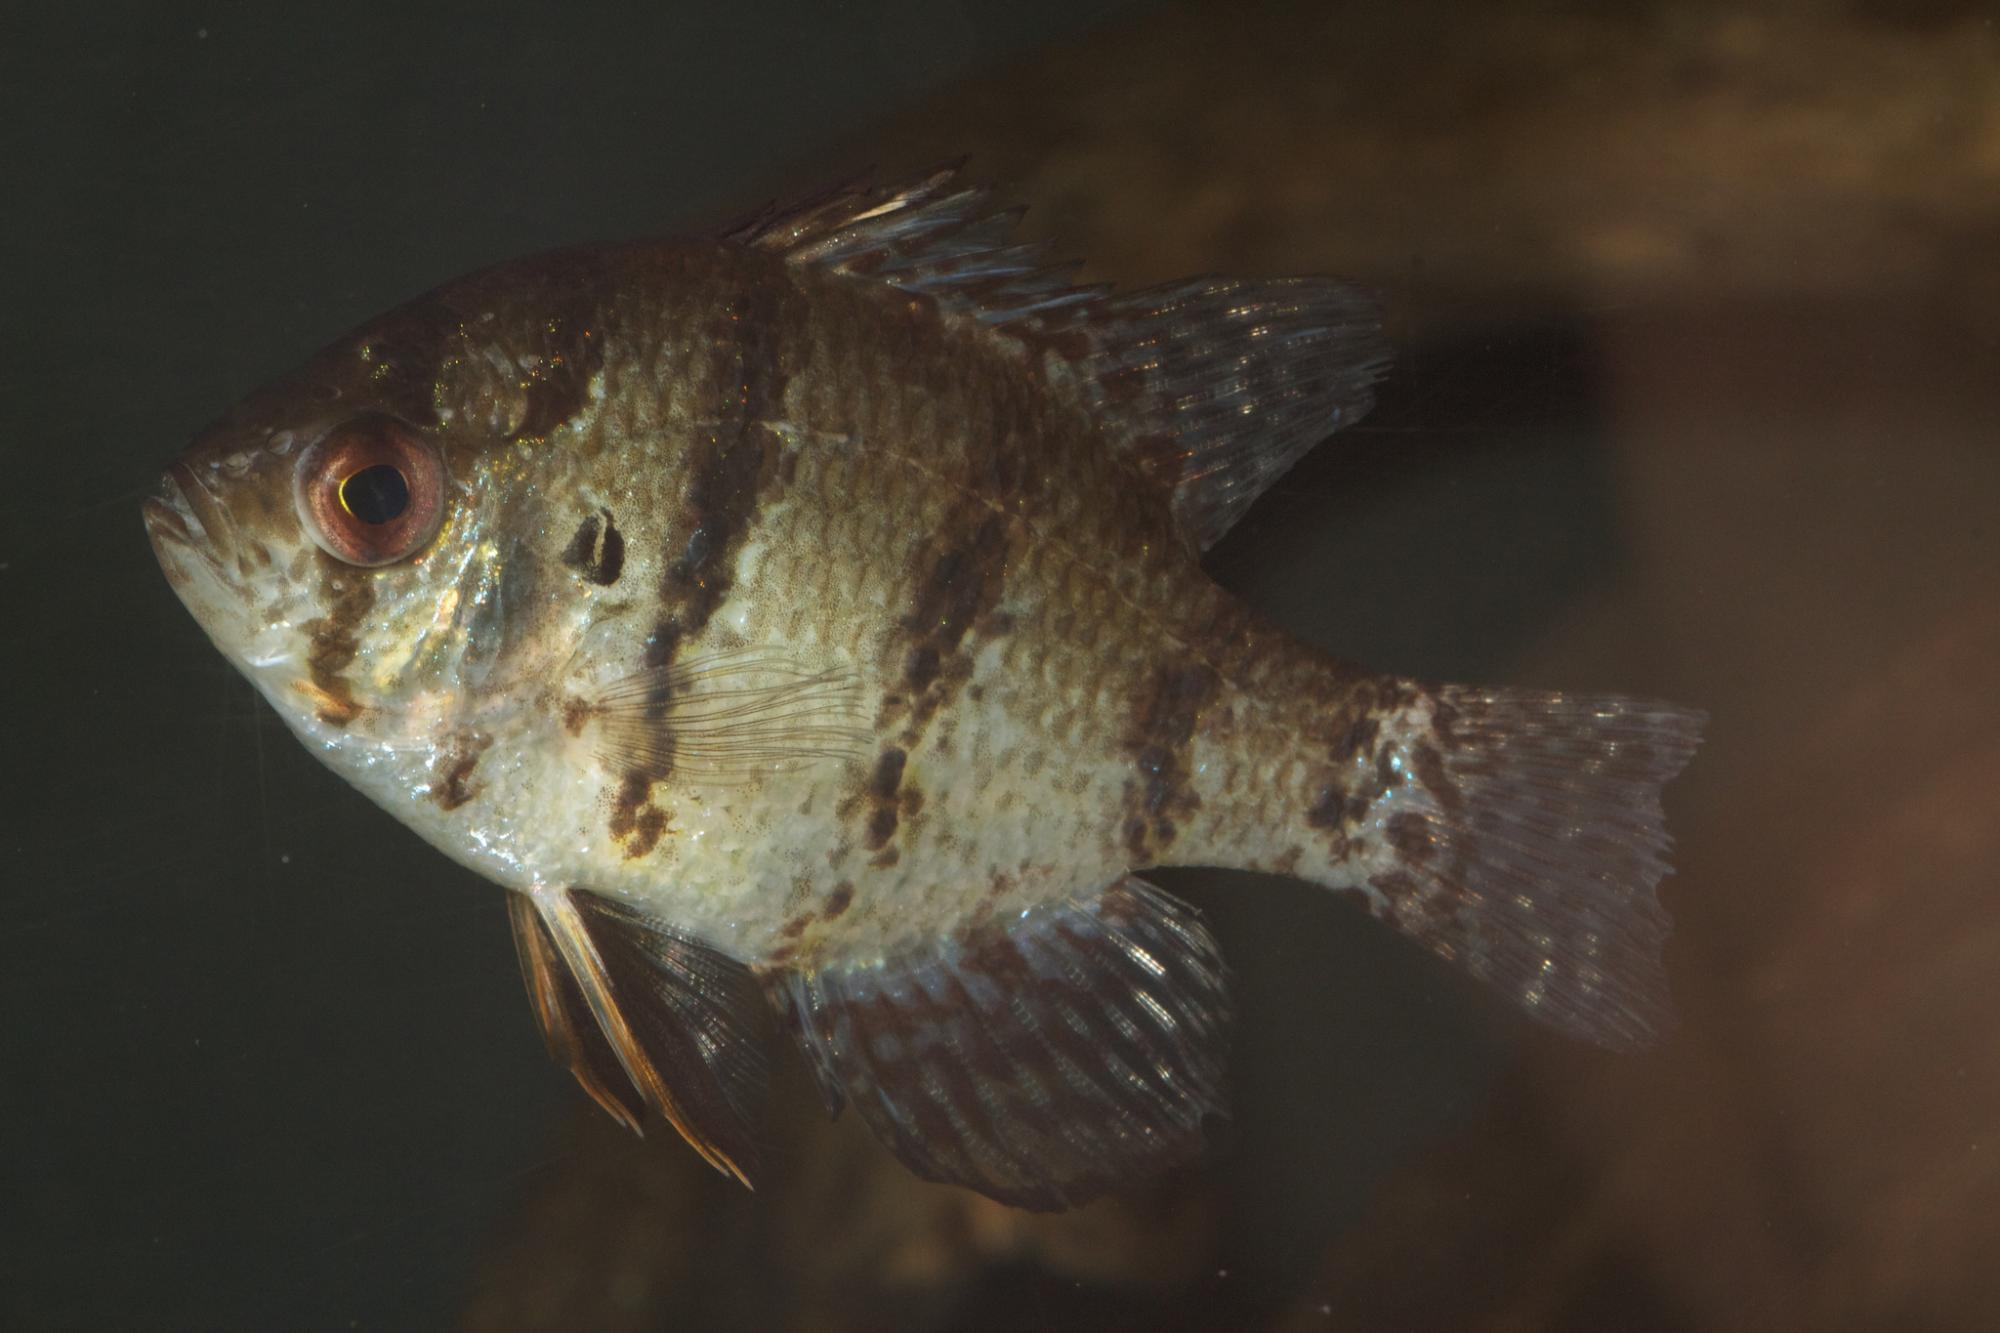 Blackbanded sunfish (Enneacanthus chaetodon) | Photo by  Brian Gratwicke